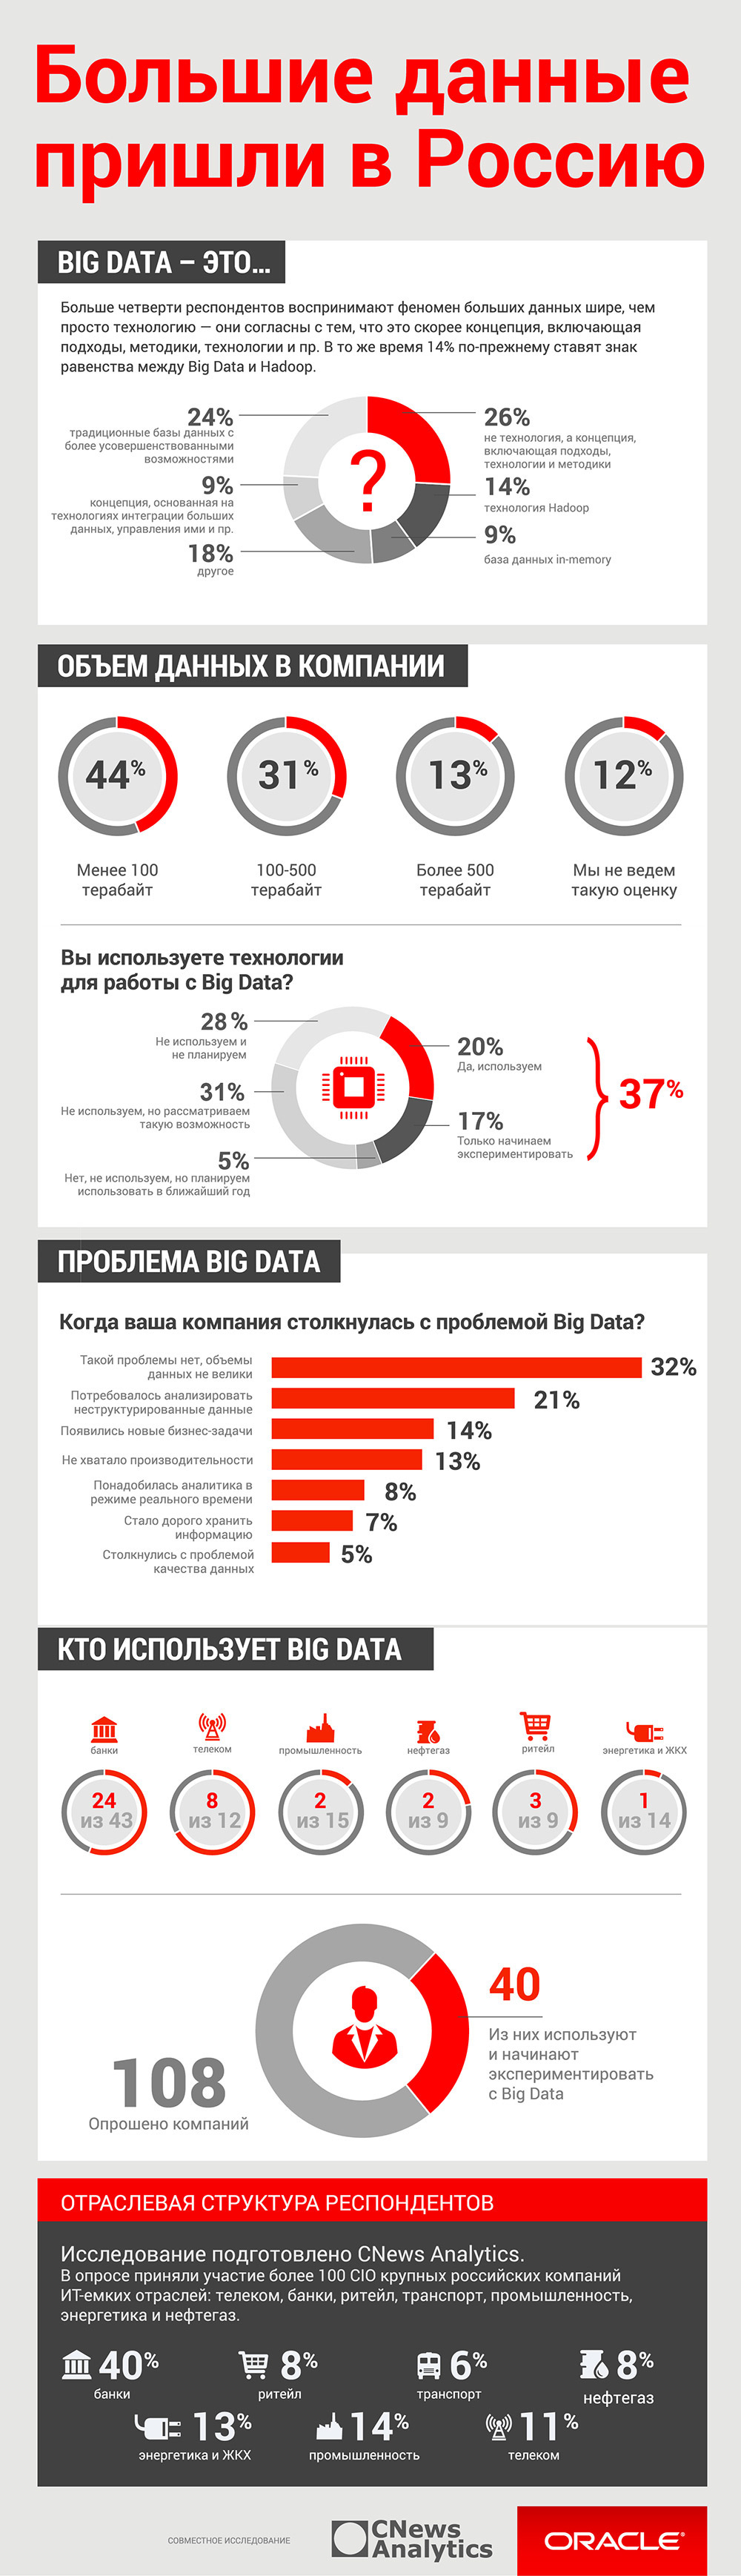 Infographic: Oracle Big Data